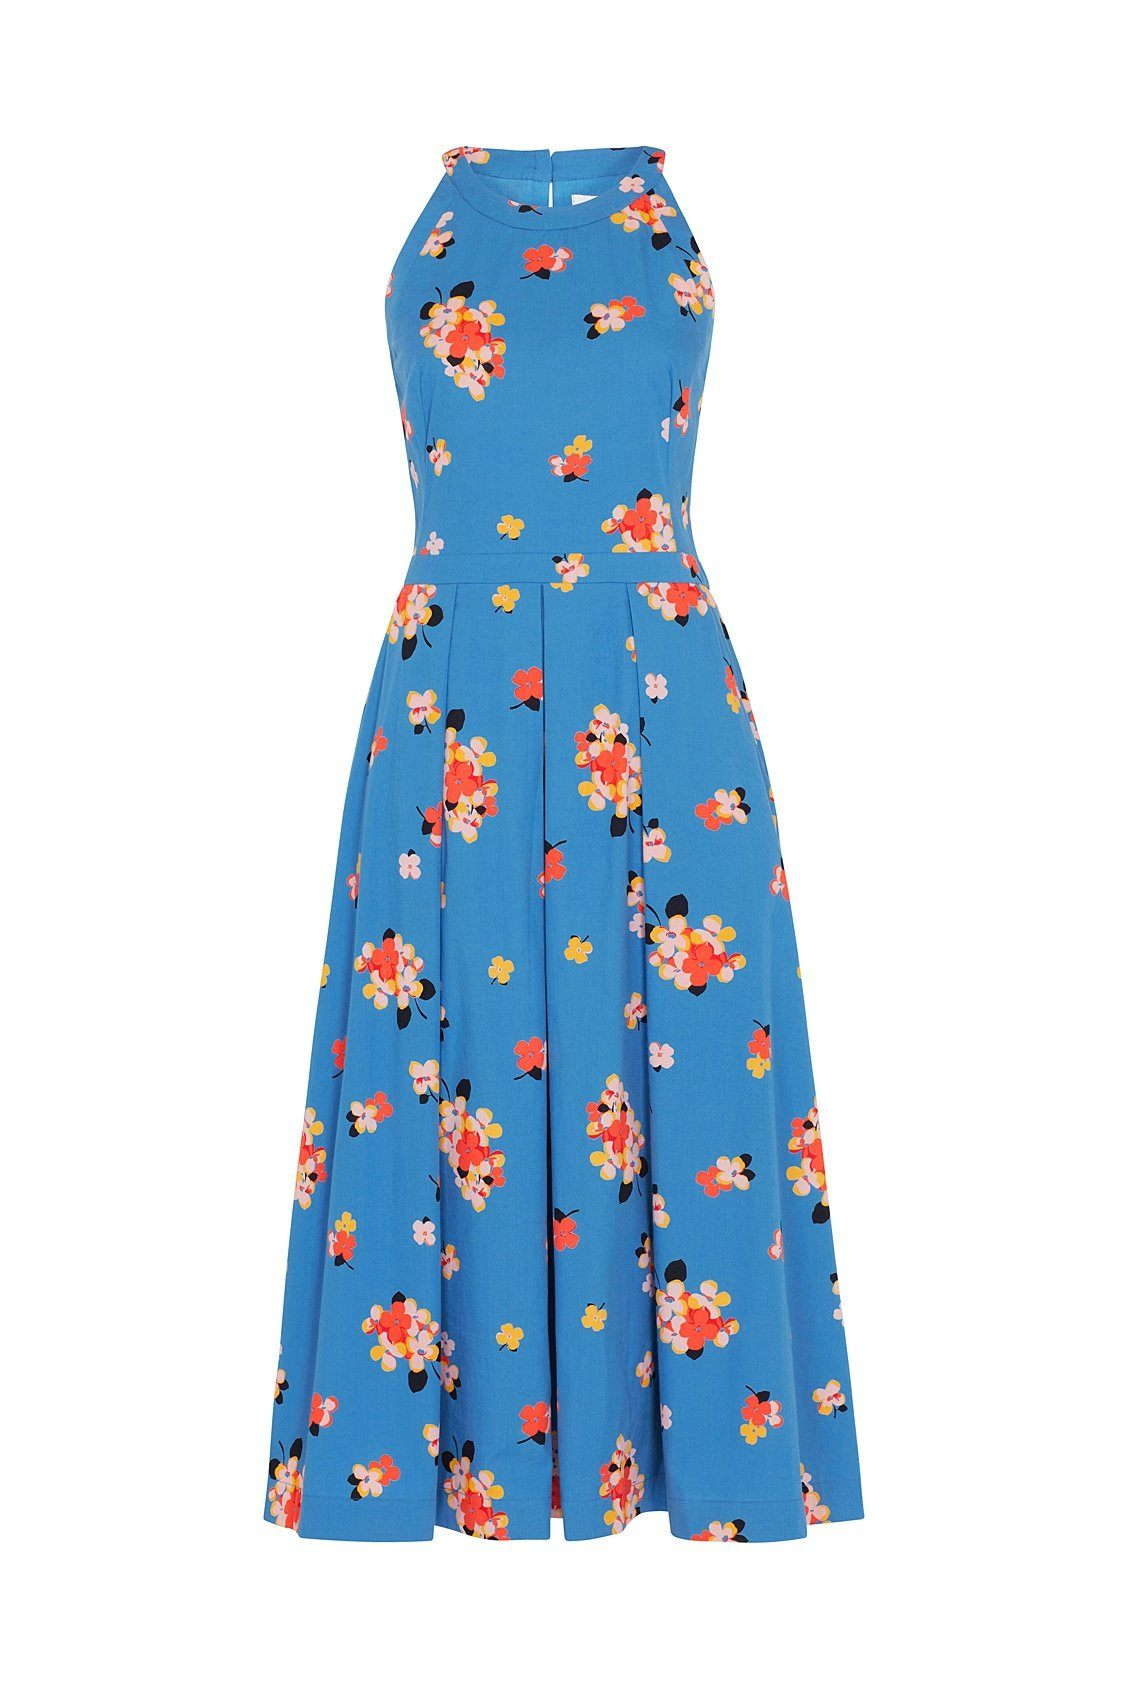 Alyssa Emily & Fin Sweet Summer Blooms Midi Dress - BouChic